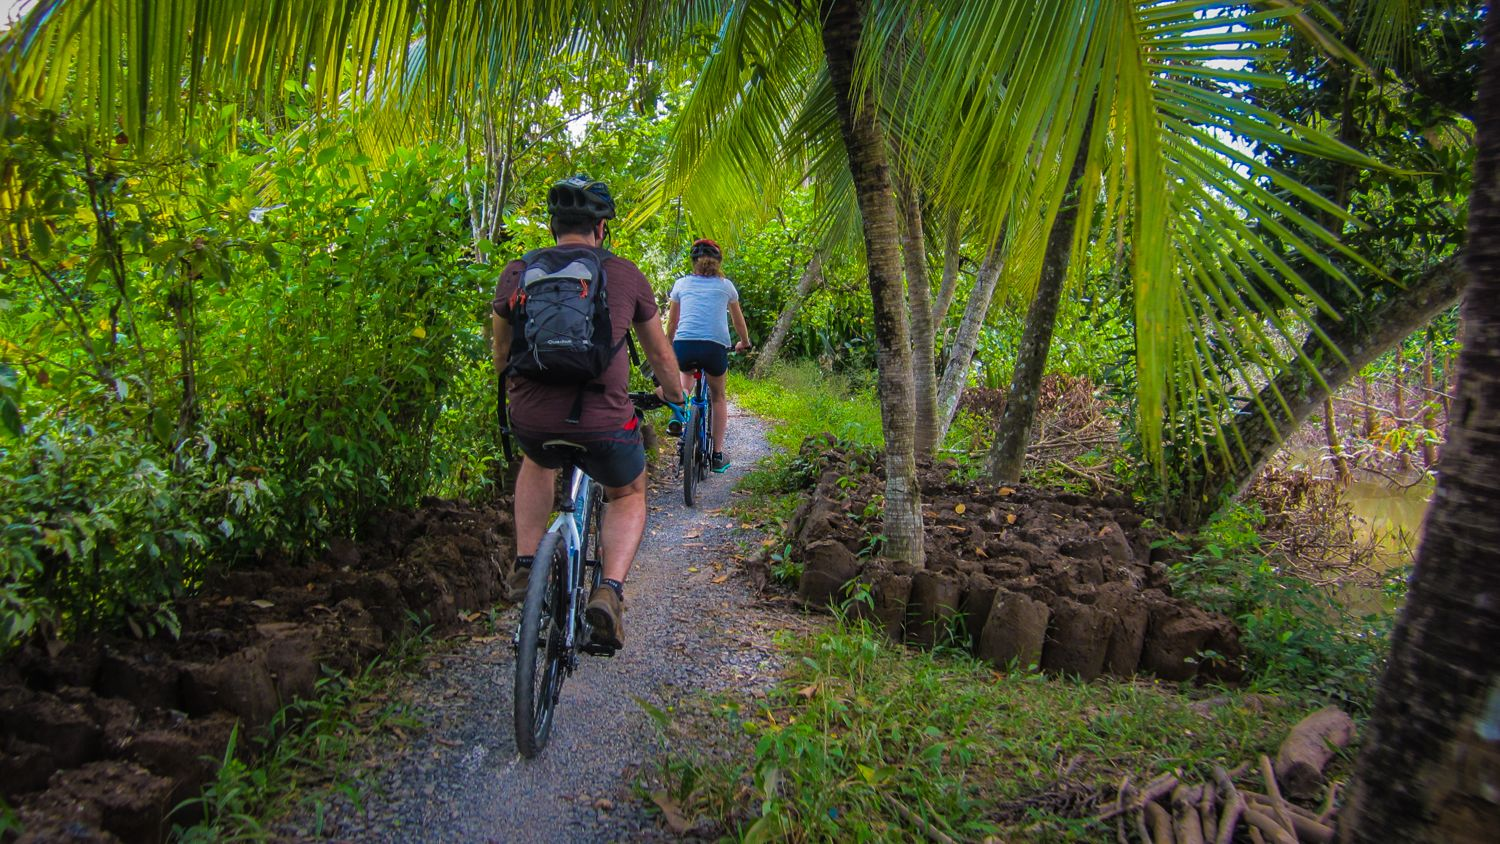 Male and female couple riding on bike path in Mekong Delta, shown from behind.